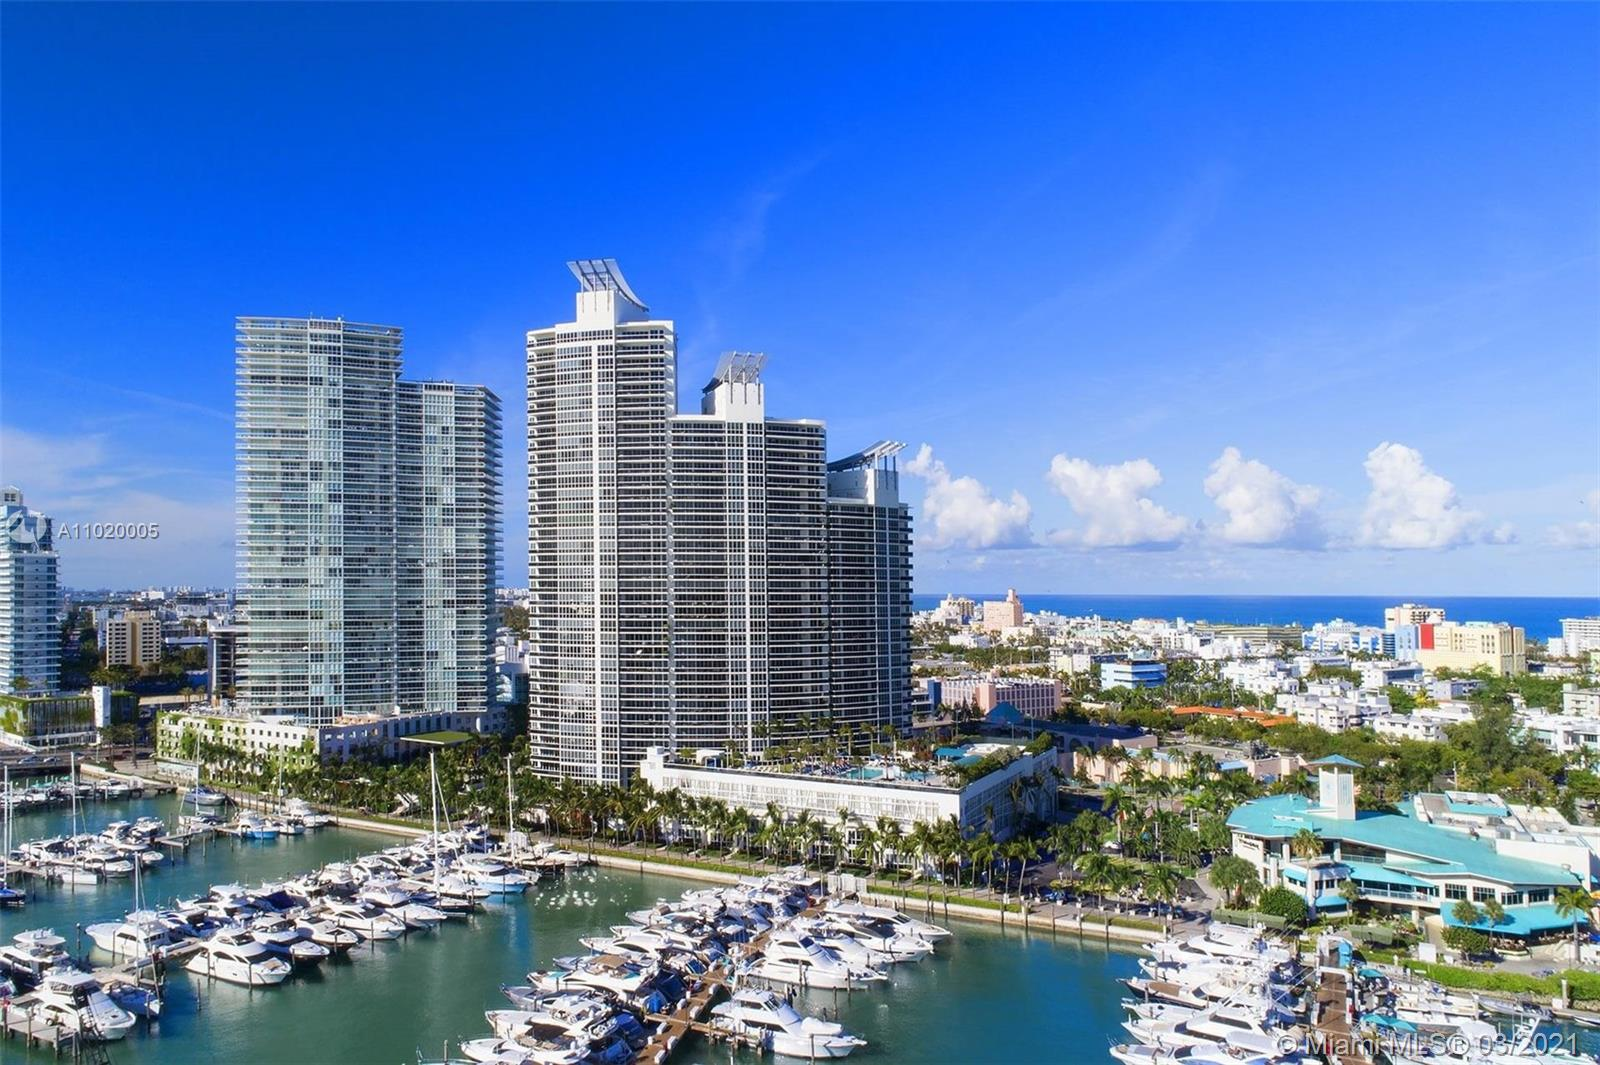 Gorgeous 3 Bedroom and 3 & Half Bath condo in prestigious Murano Grande building in the upscale South Pointe area of South Beach. Unit is 3058 sft in sought-after Line 03 of the building, with flow-through floor plan, two large balconies with spectacular water and city views. Unit has marble floors, two A/C units, top of the line kitchen appliances & private elevator foyer. High-end amenities such as SPA, Gym, Pool, Tennis court, Recreation room, 24 Security & Front Desk service, Valet Parking and more. Walk to the beach, stores, best restaurants of South Beach.